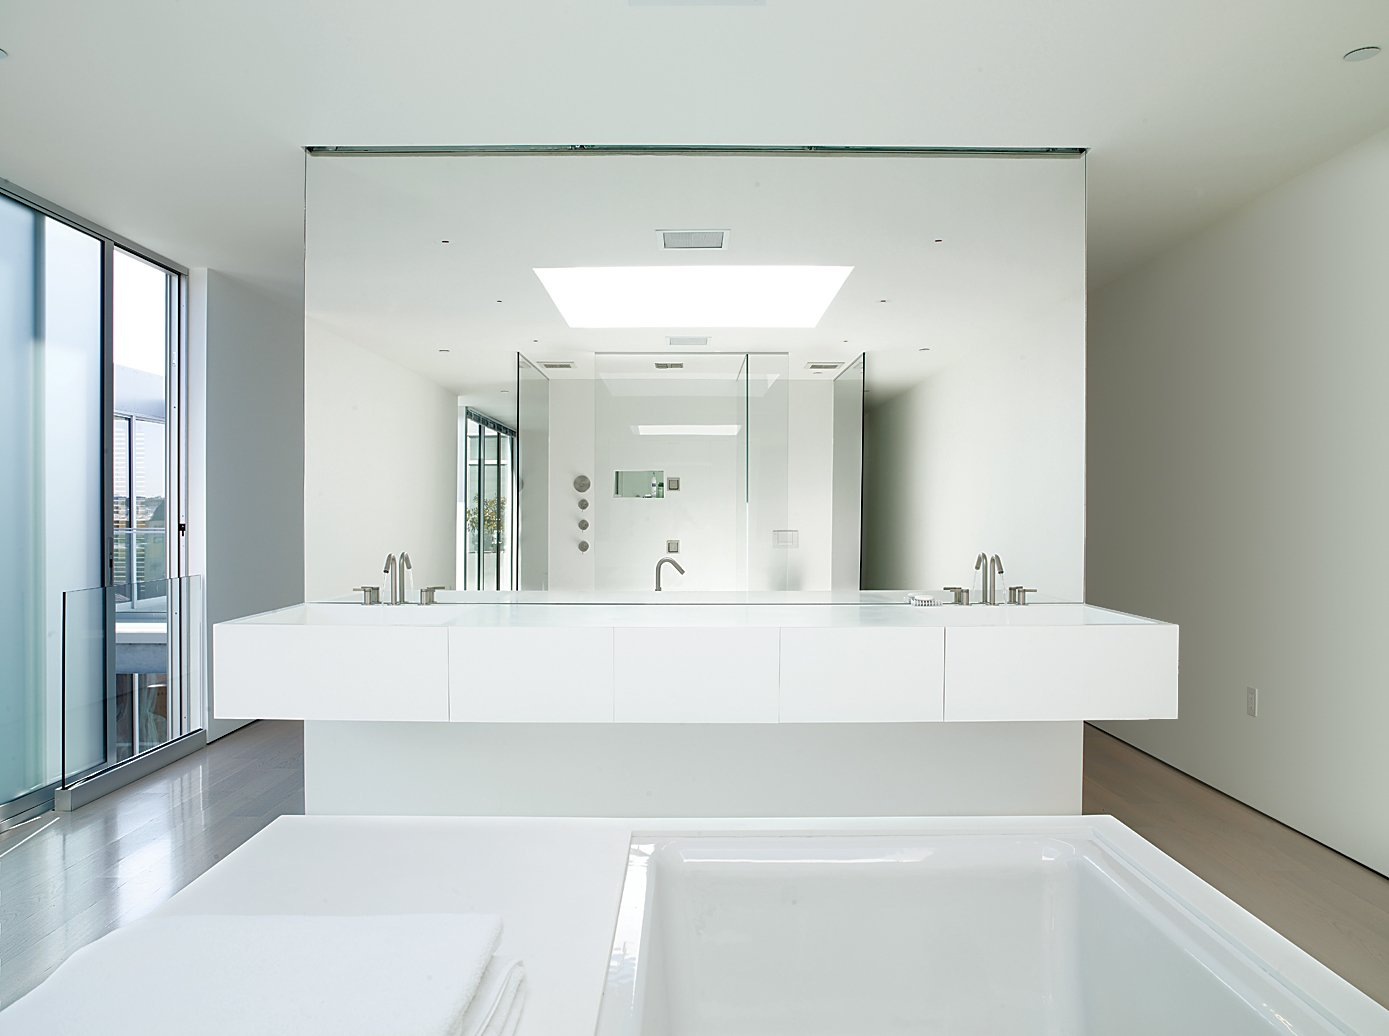 The master bathroom is outfitted with Kohler fixtures and custom pieces.